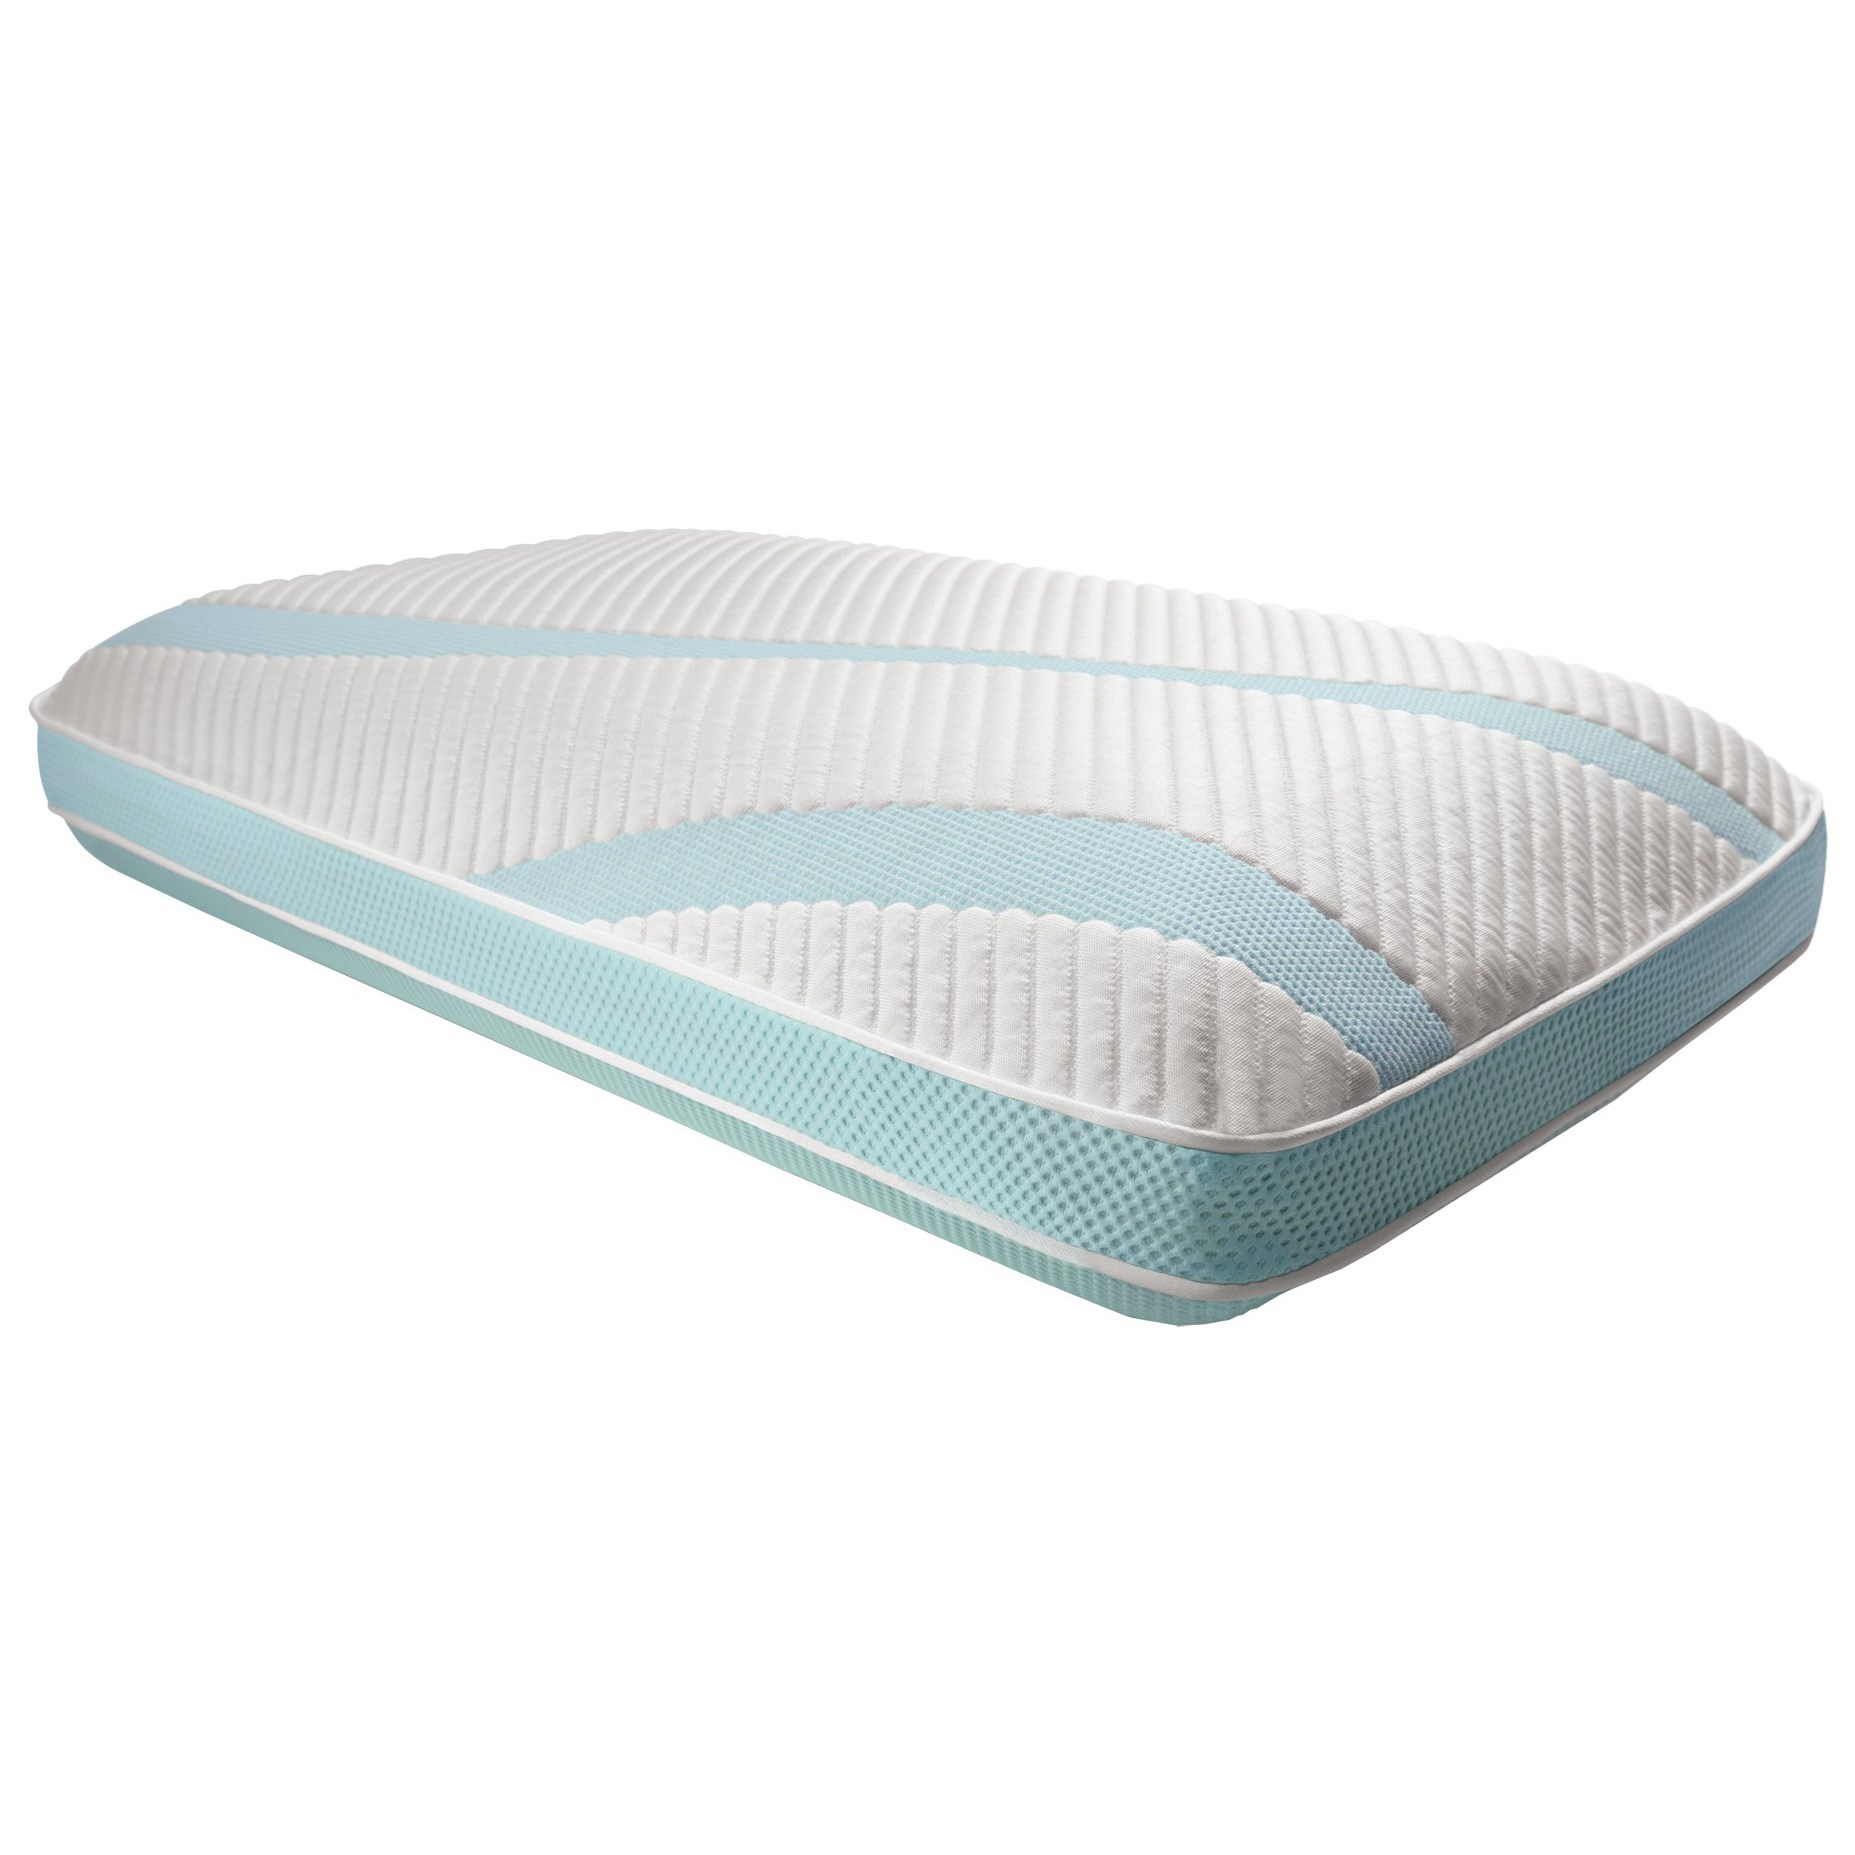 King TEMPUR-Adapt® Pro-Hi + Cooling Pillow